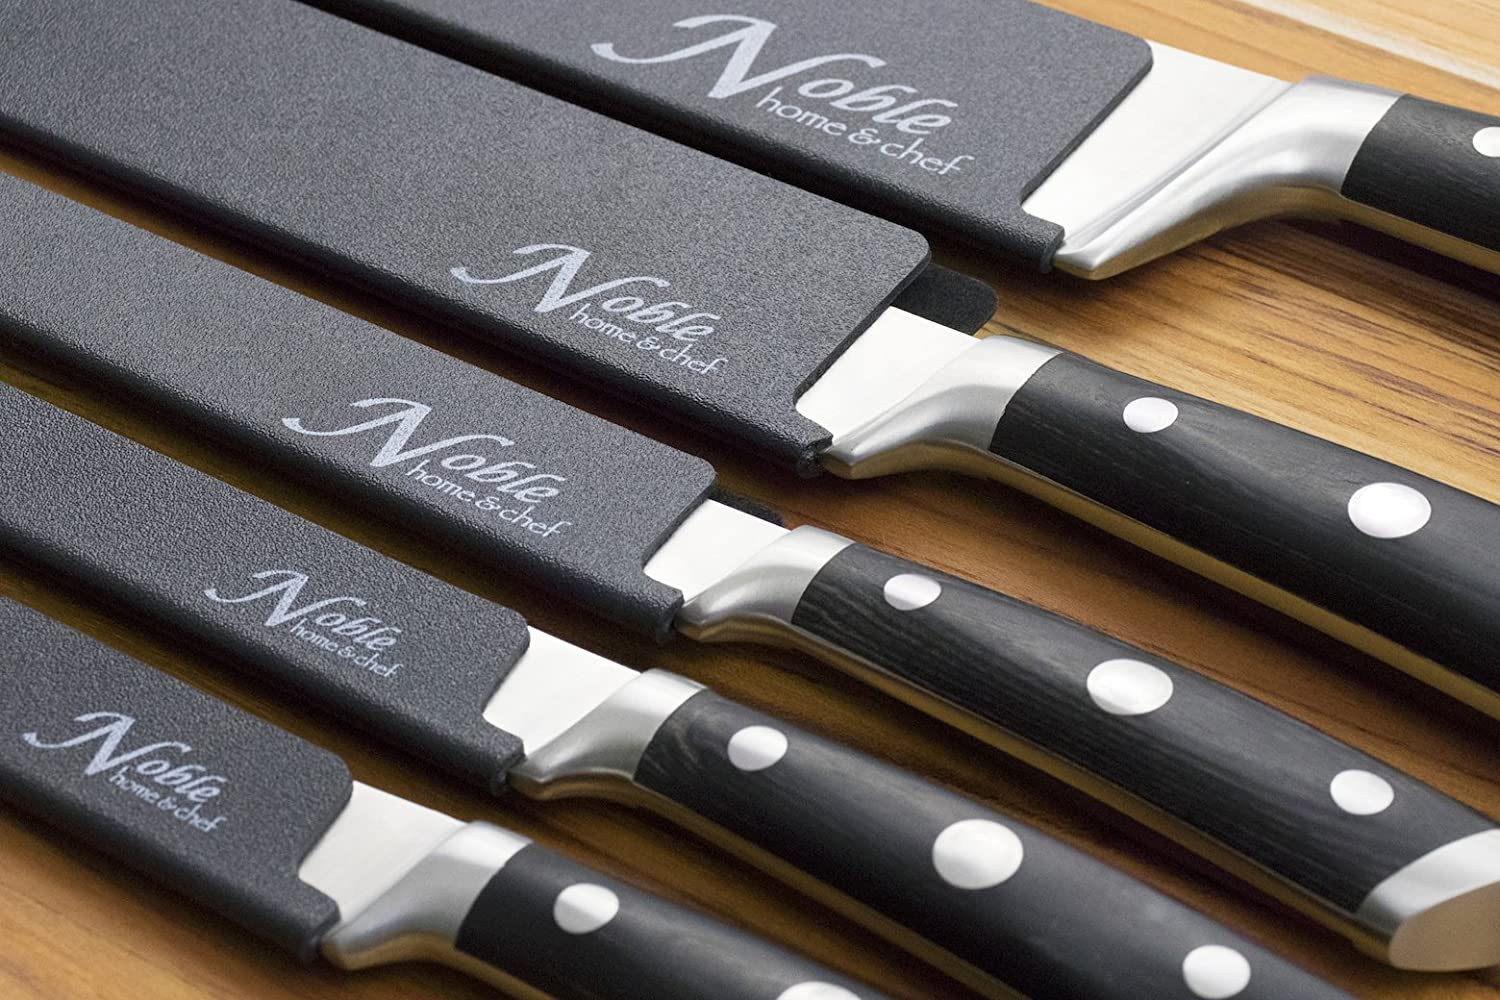 Amazon.com: 10-Piece Universal Knife Edge Guards are More ...